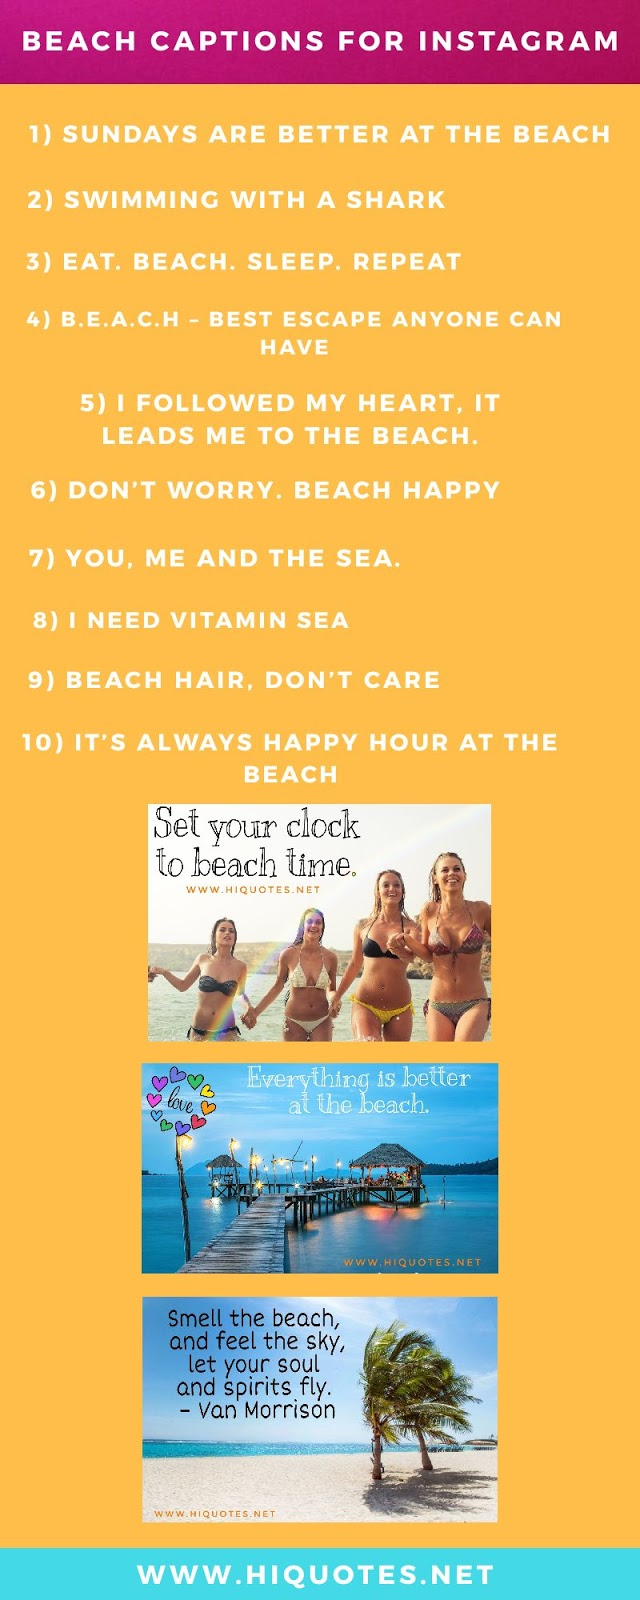 Beach Captions infographic